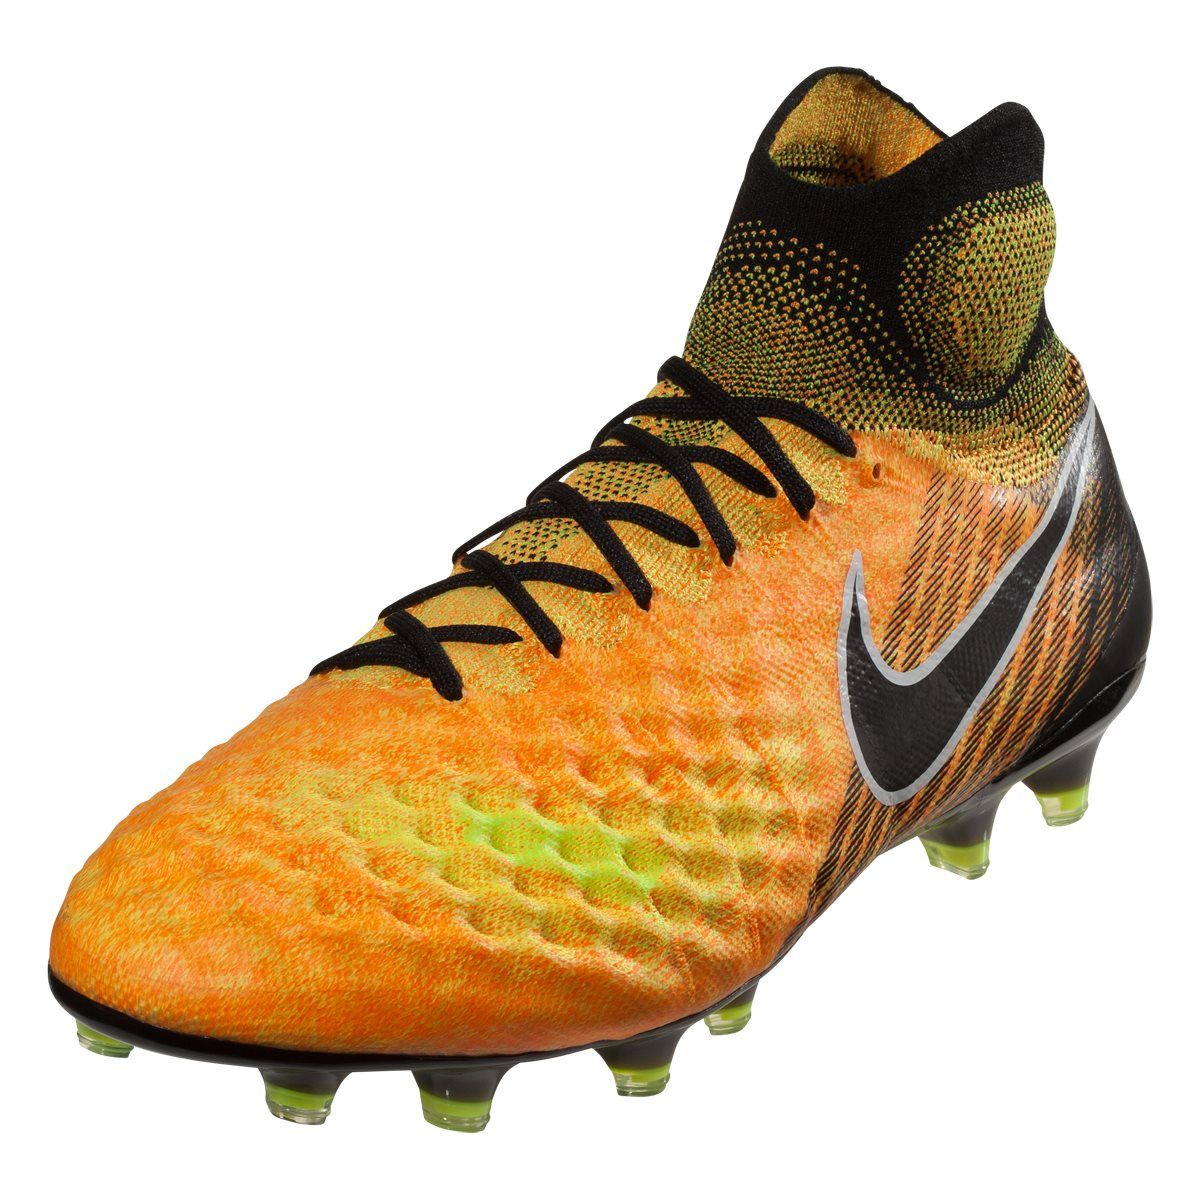 Lock In, Let Loose- Nike Magista Obra II FG Soccer Cleat